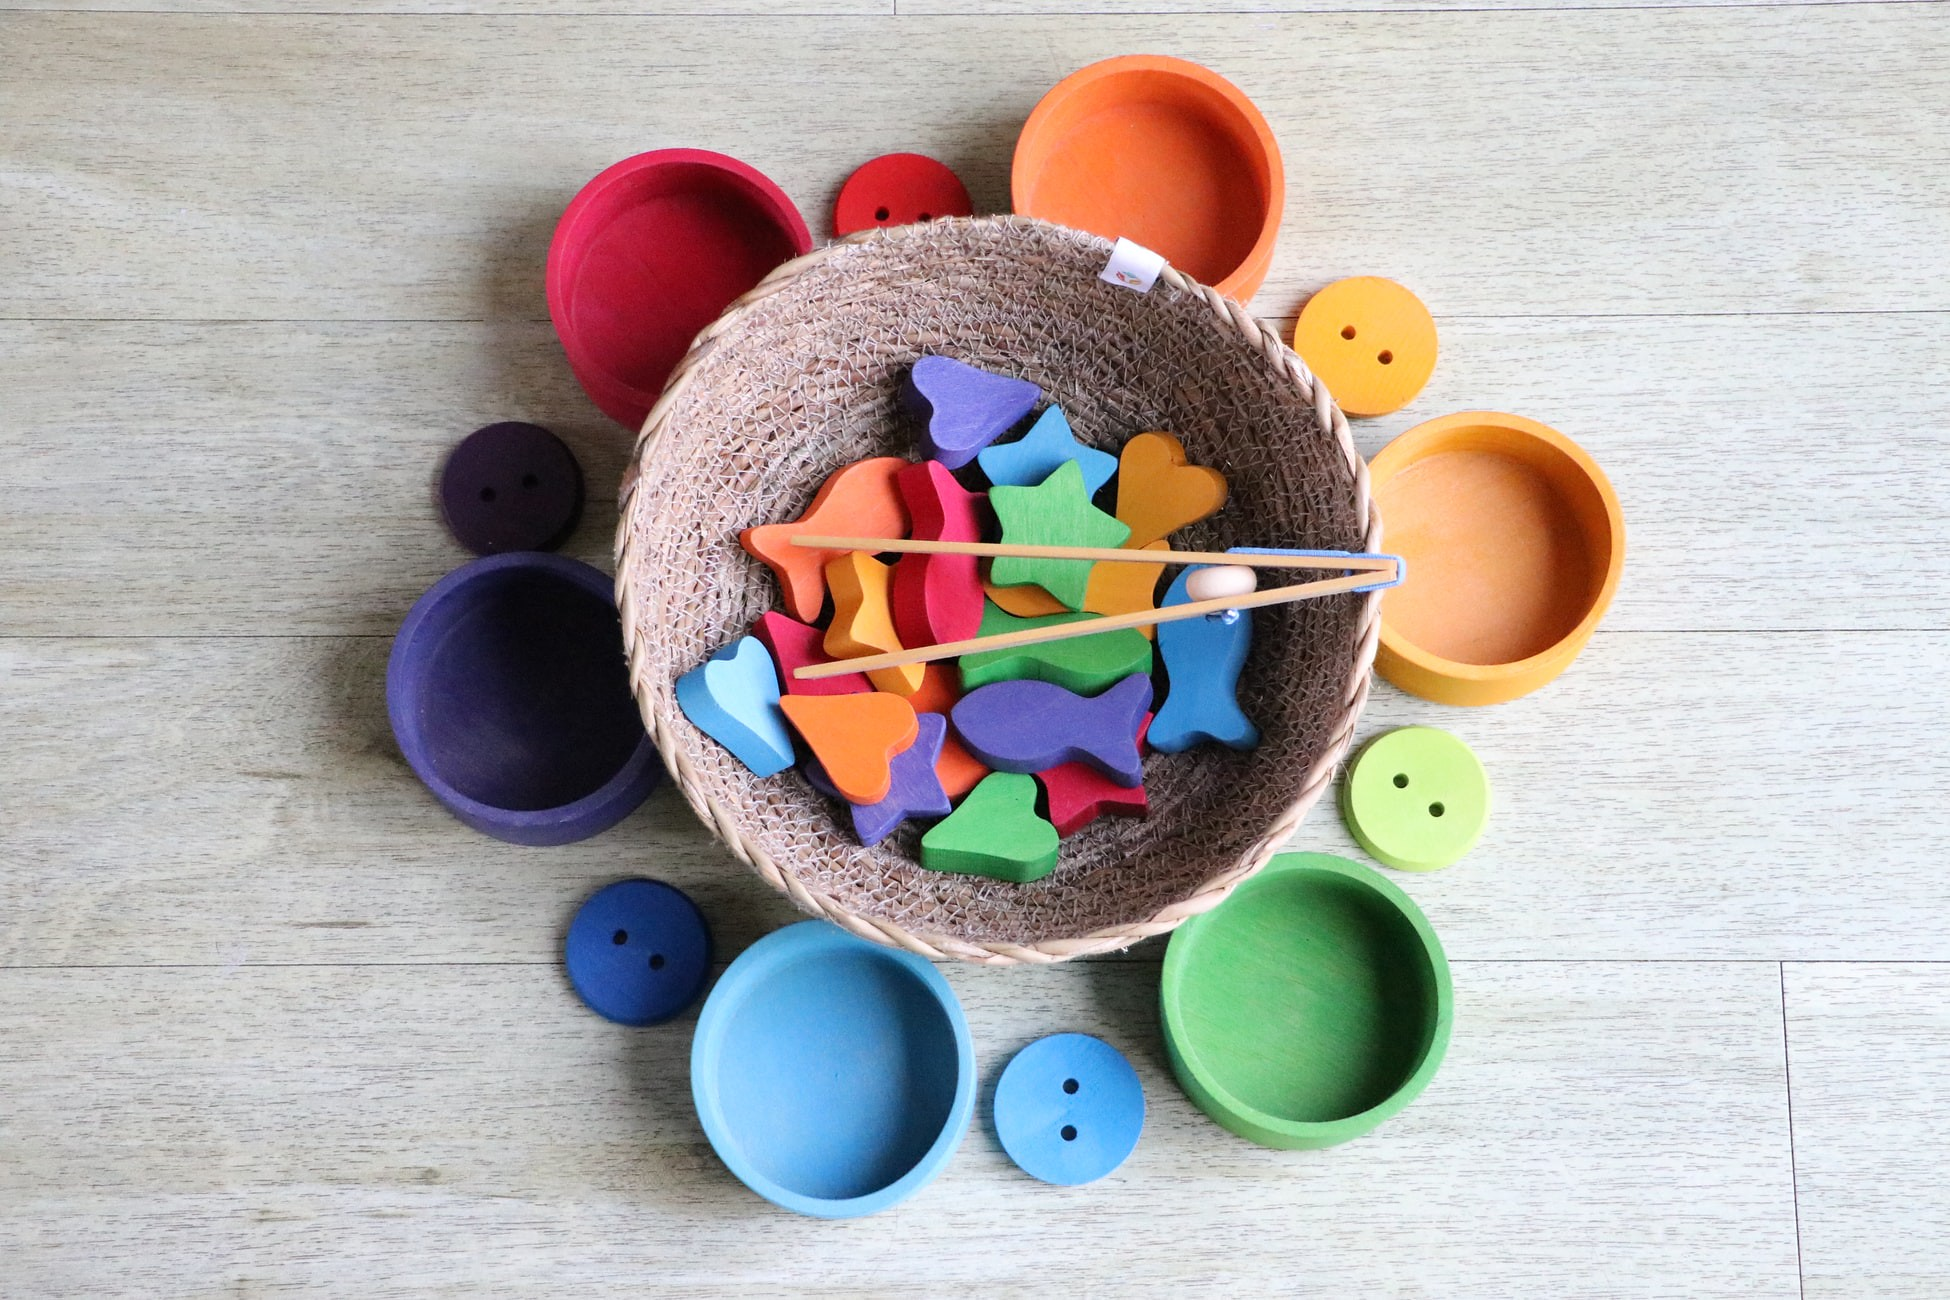 colourful wooden shapes in woven basket